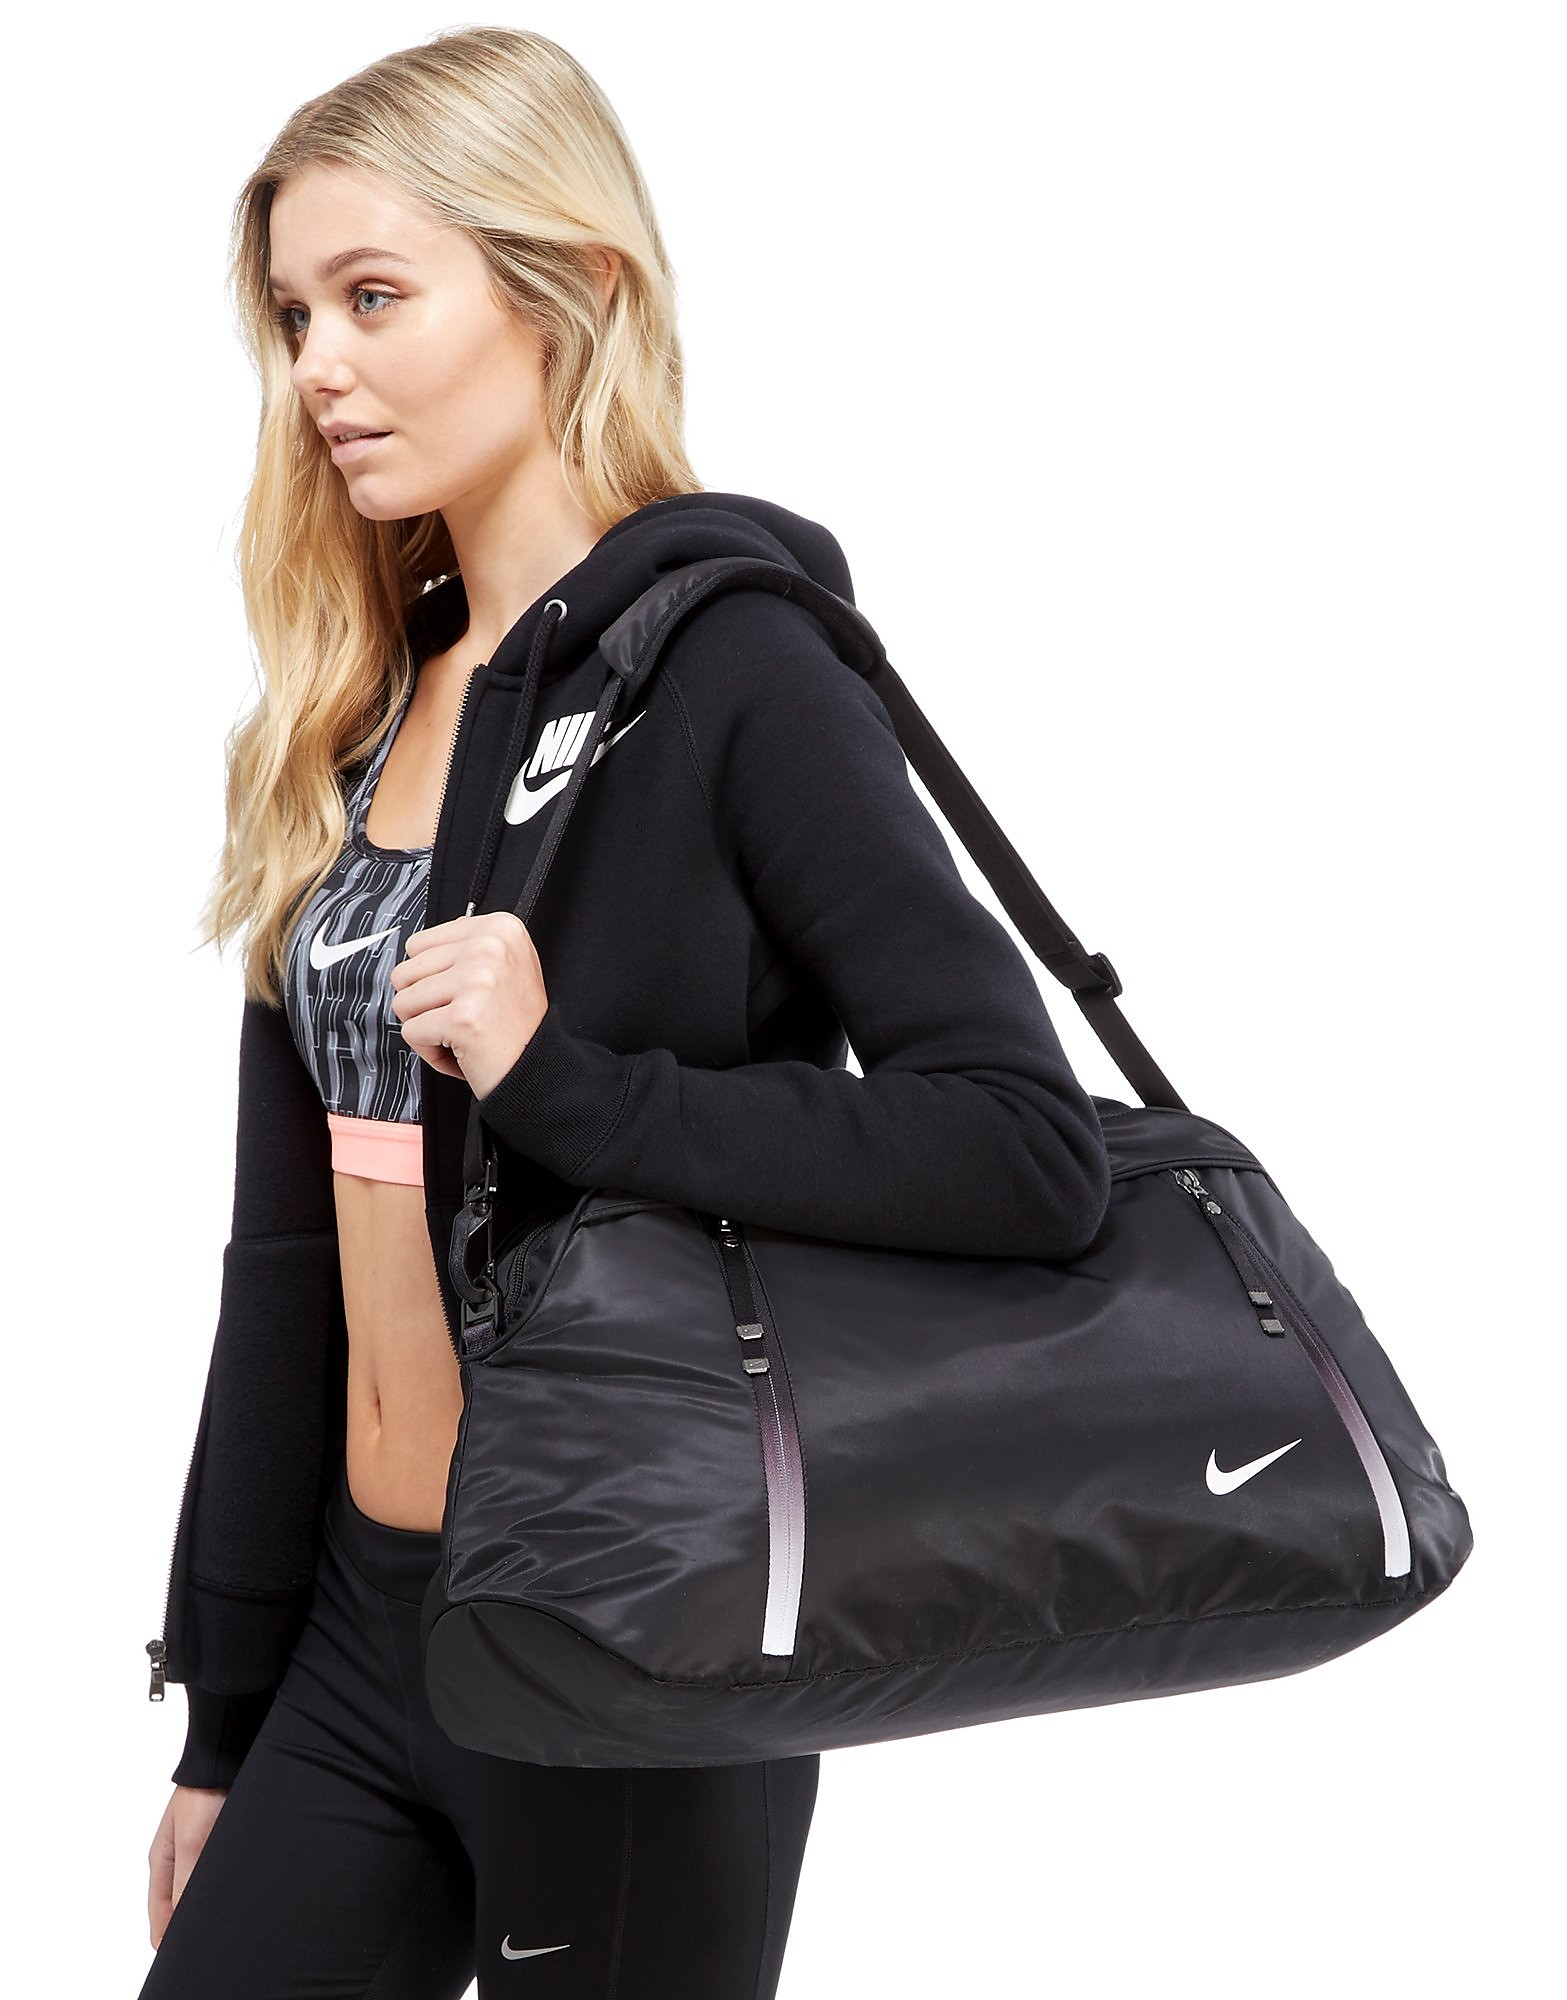 Nike Auralux Training Bag